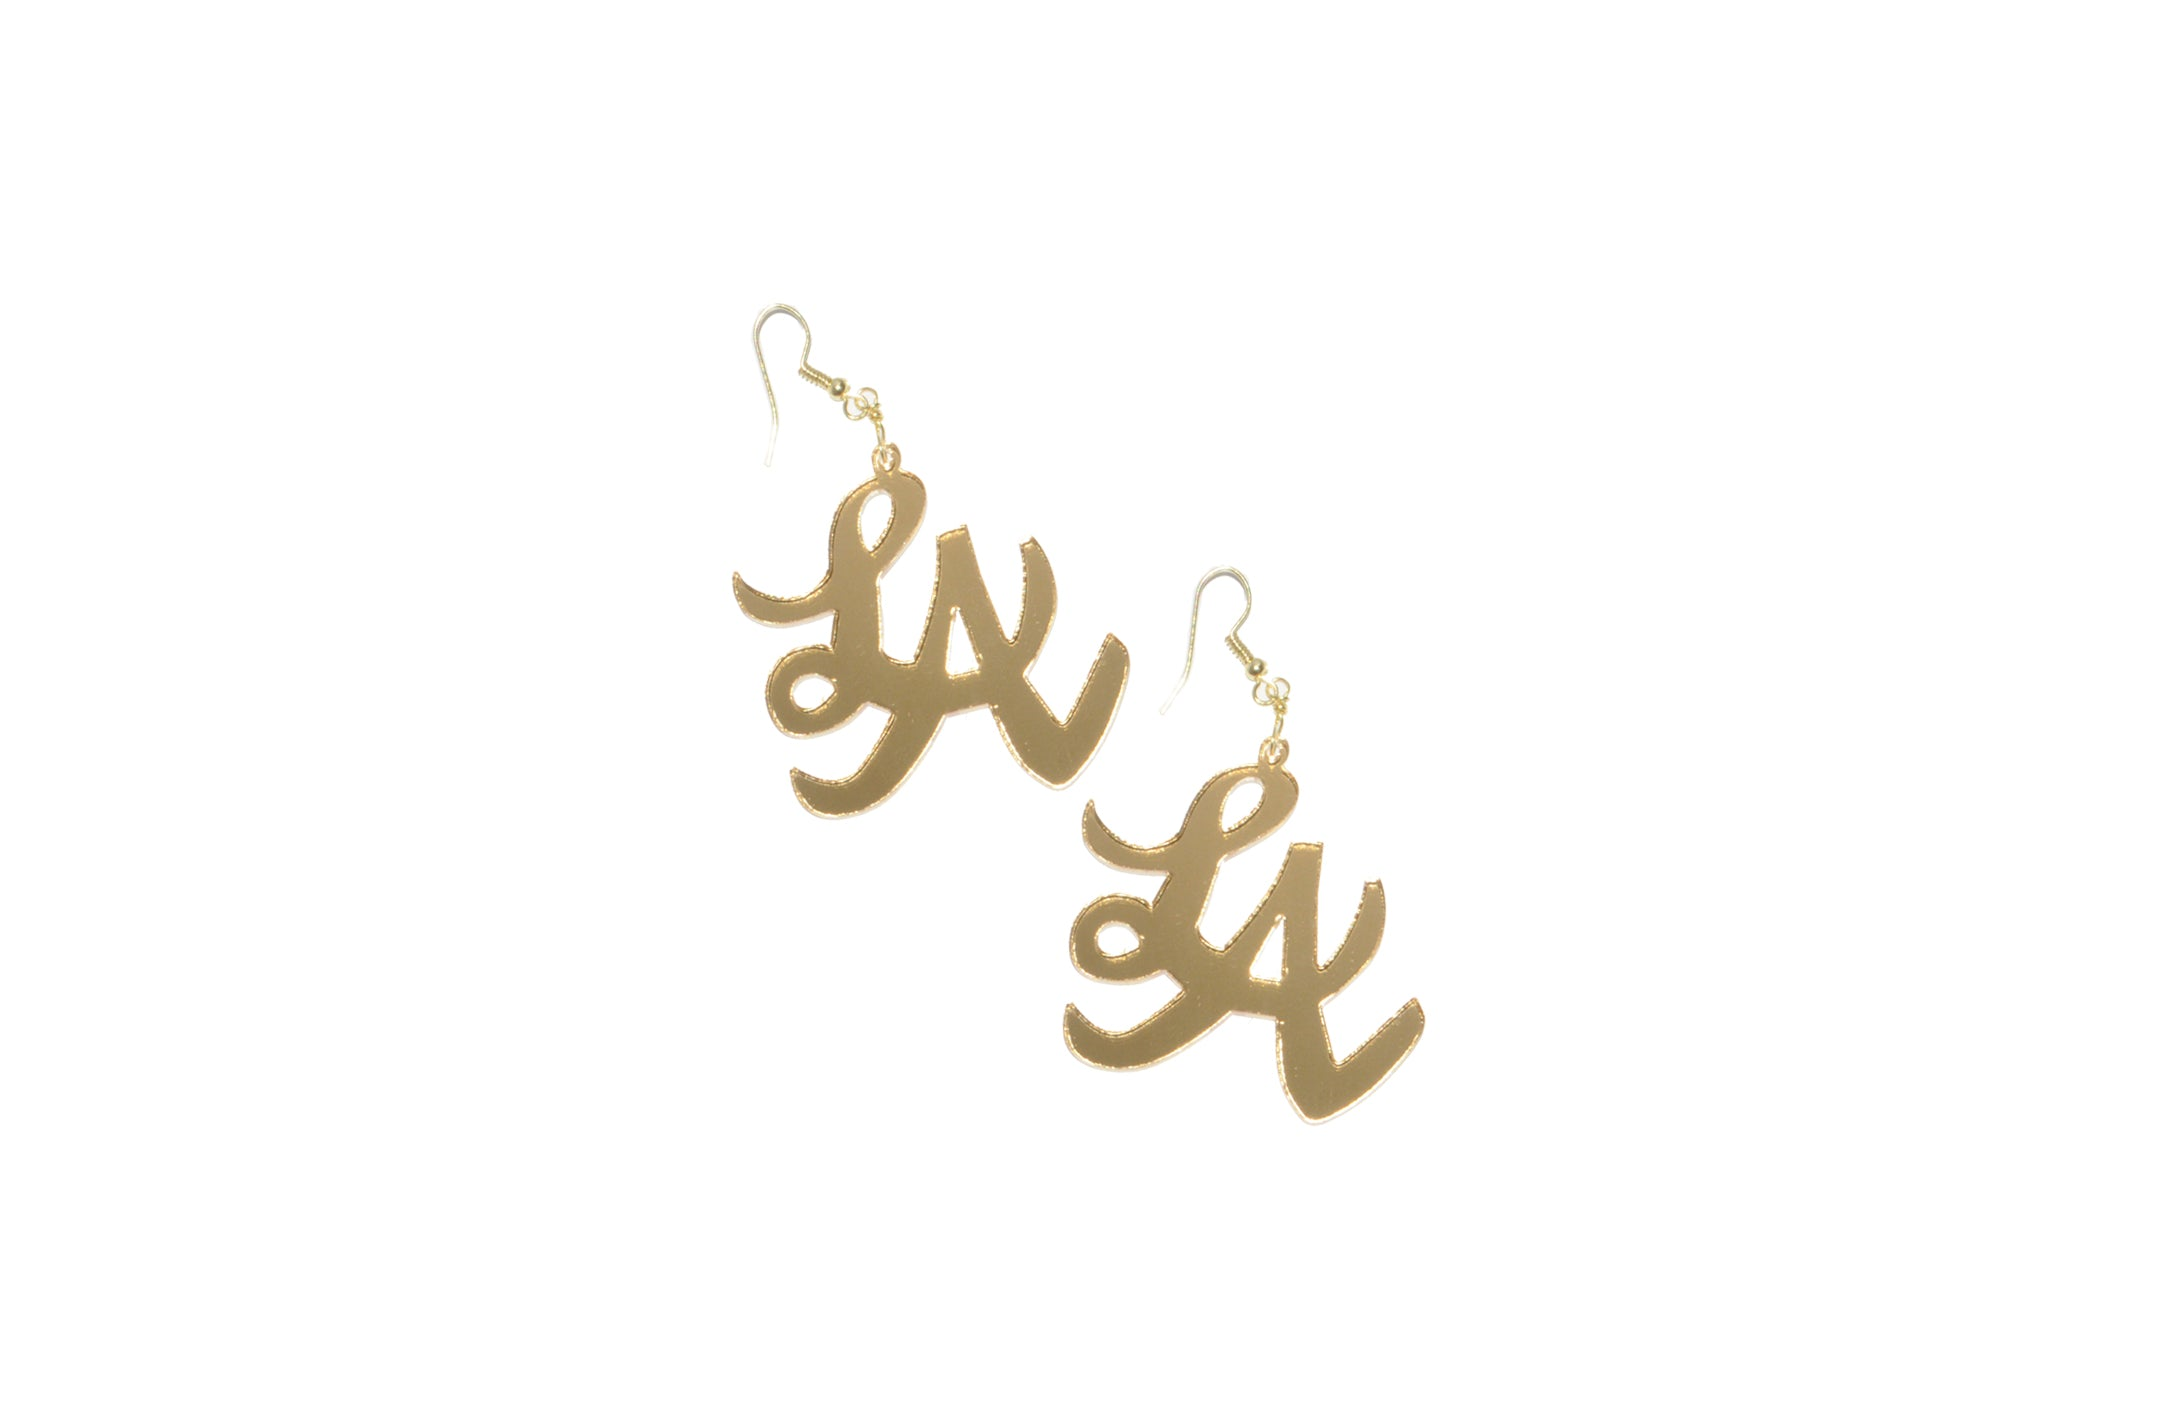 LA Living Earrings